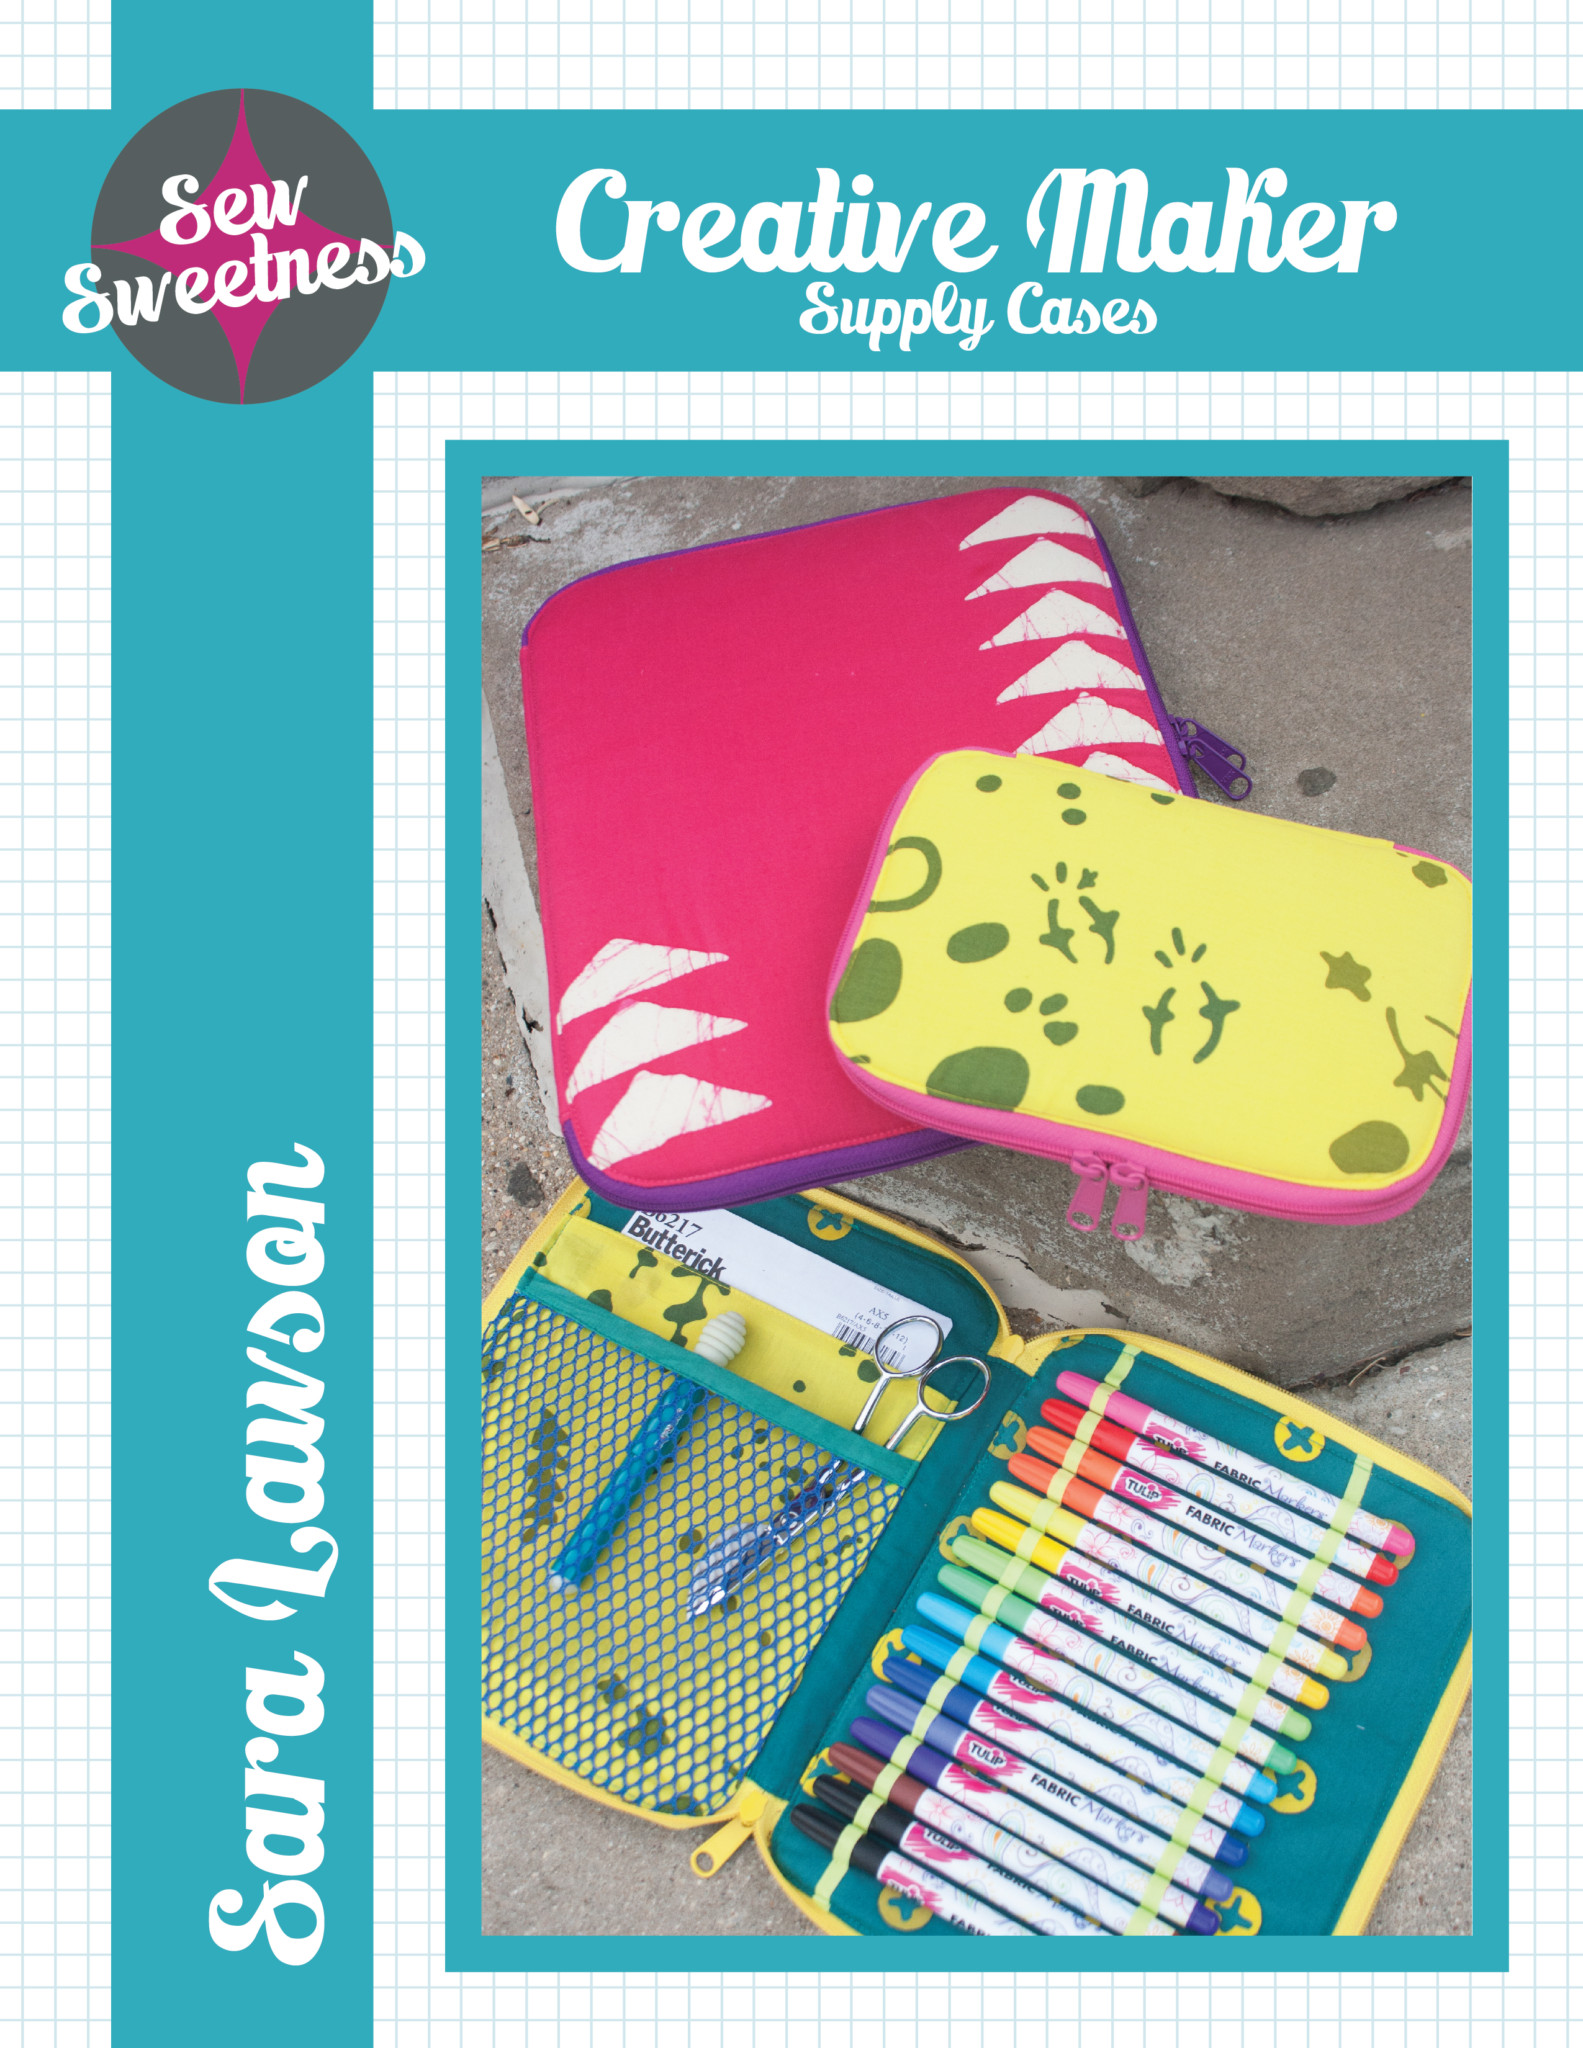 Sew Sweetness Creative Maker Supply Case sewing pattern